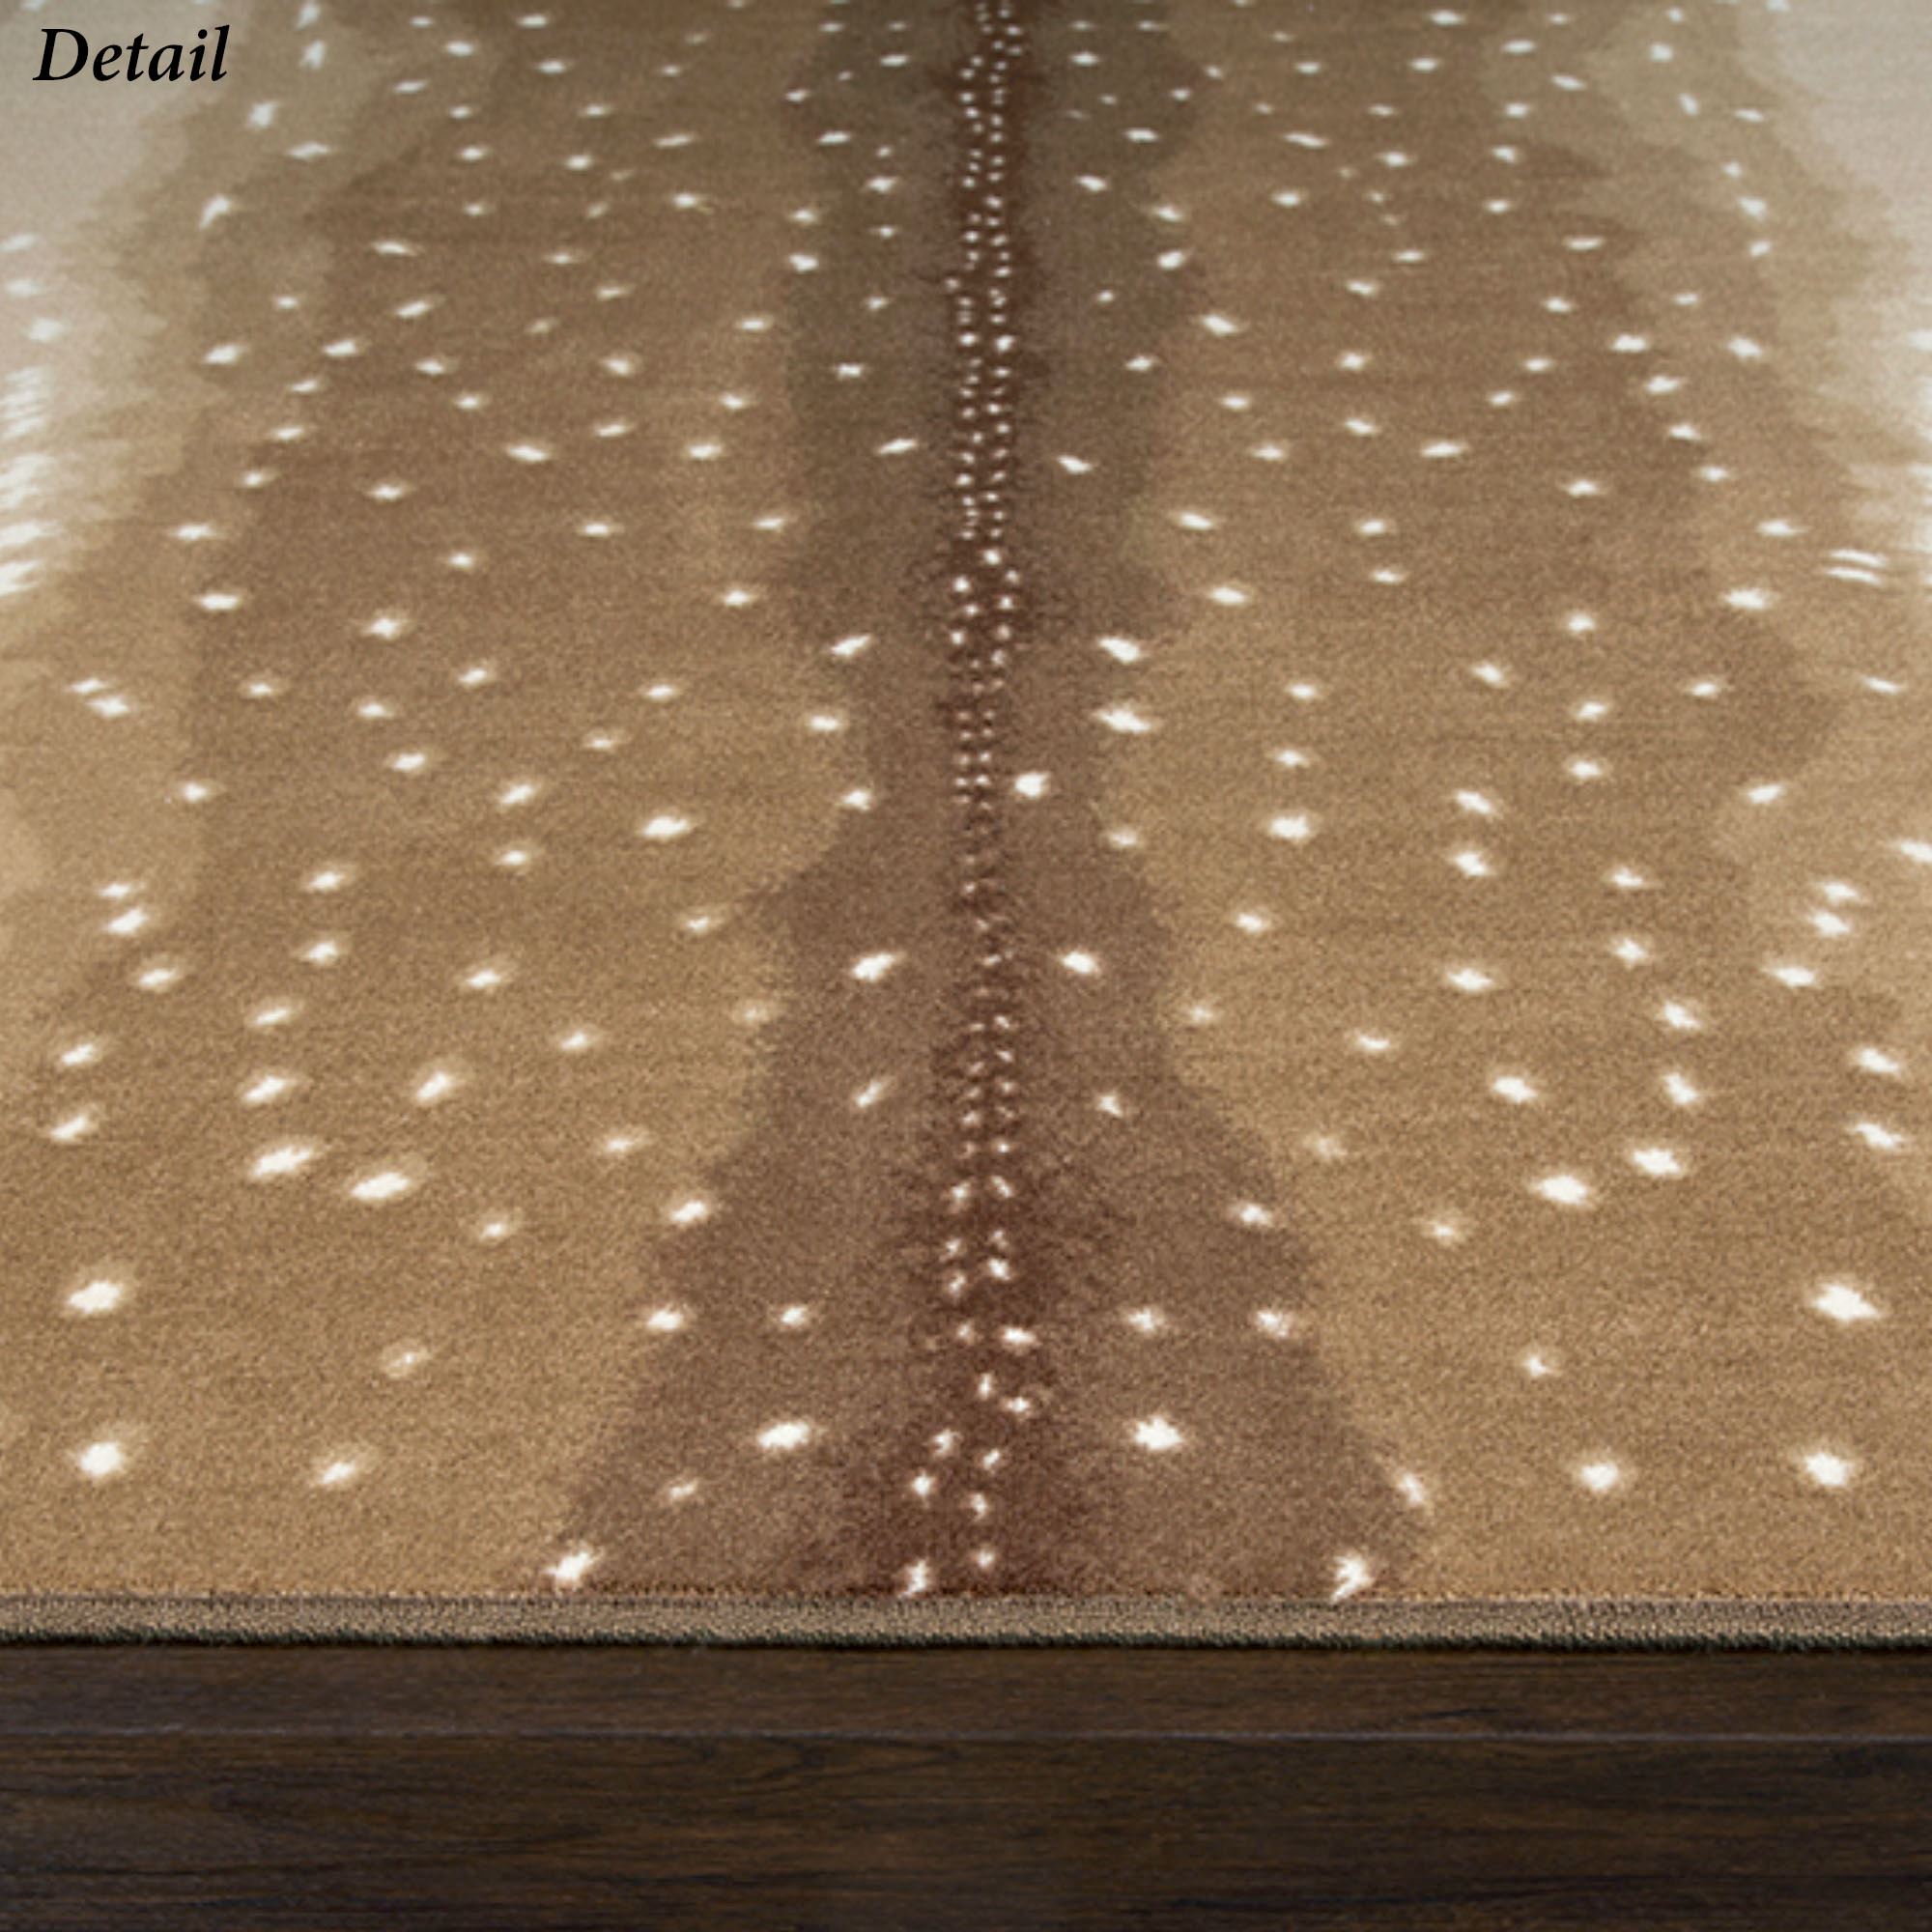 Indian Axis Deer Pattern Stain Resistant Antimicrobial